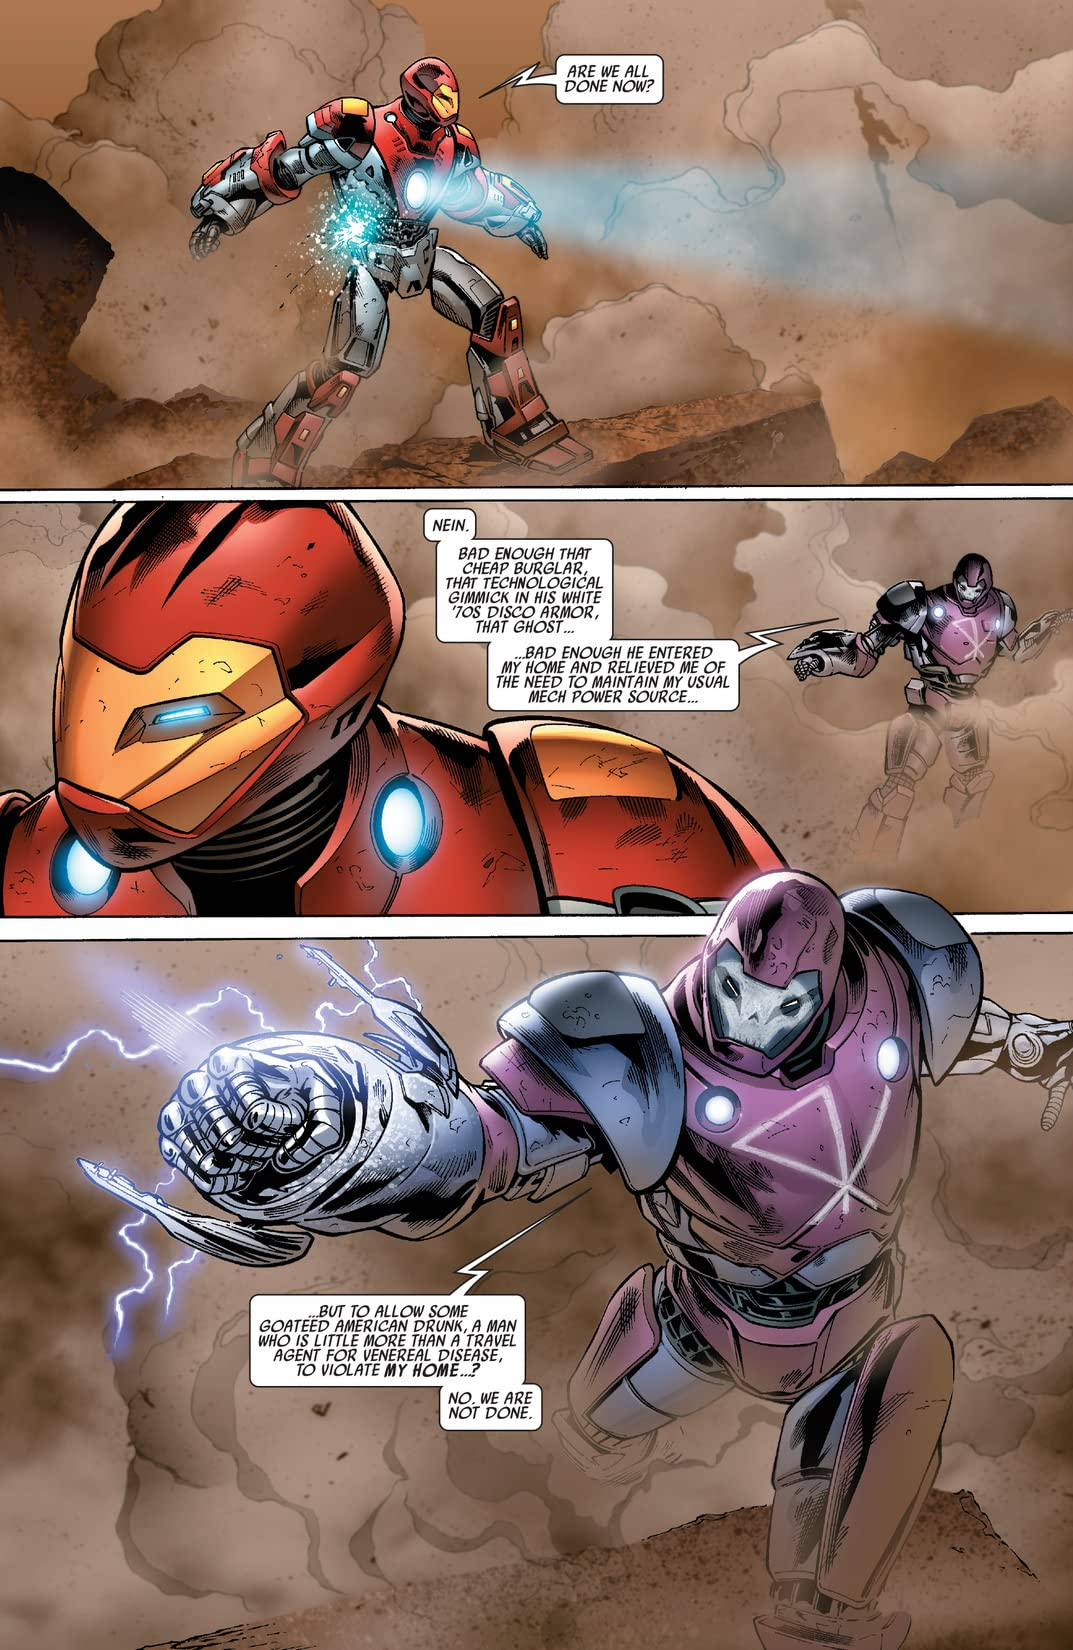 Ultimate Comics Armor Wars #3 (of 4)